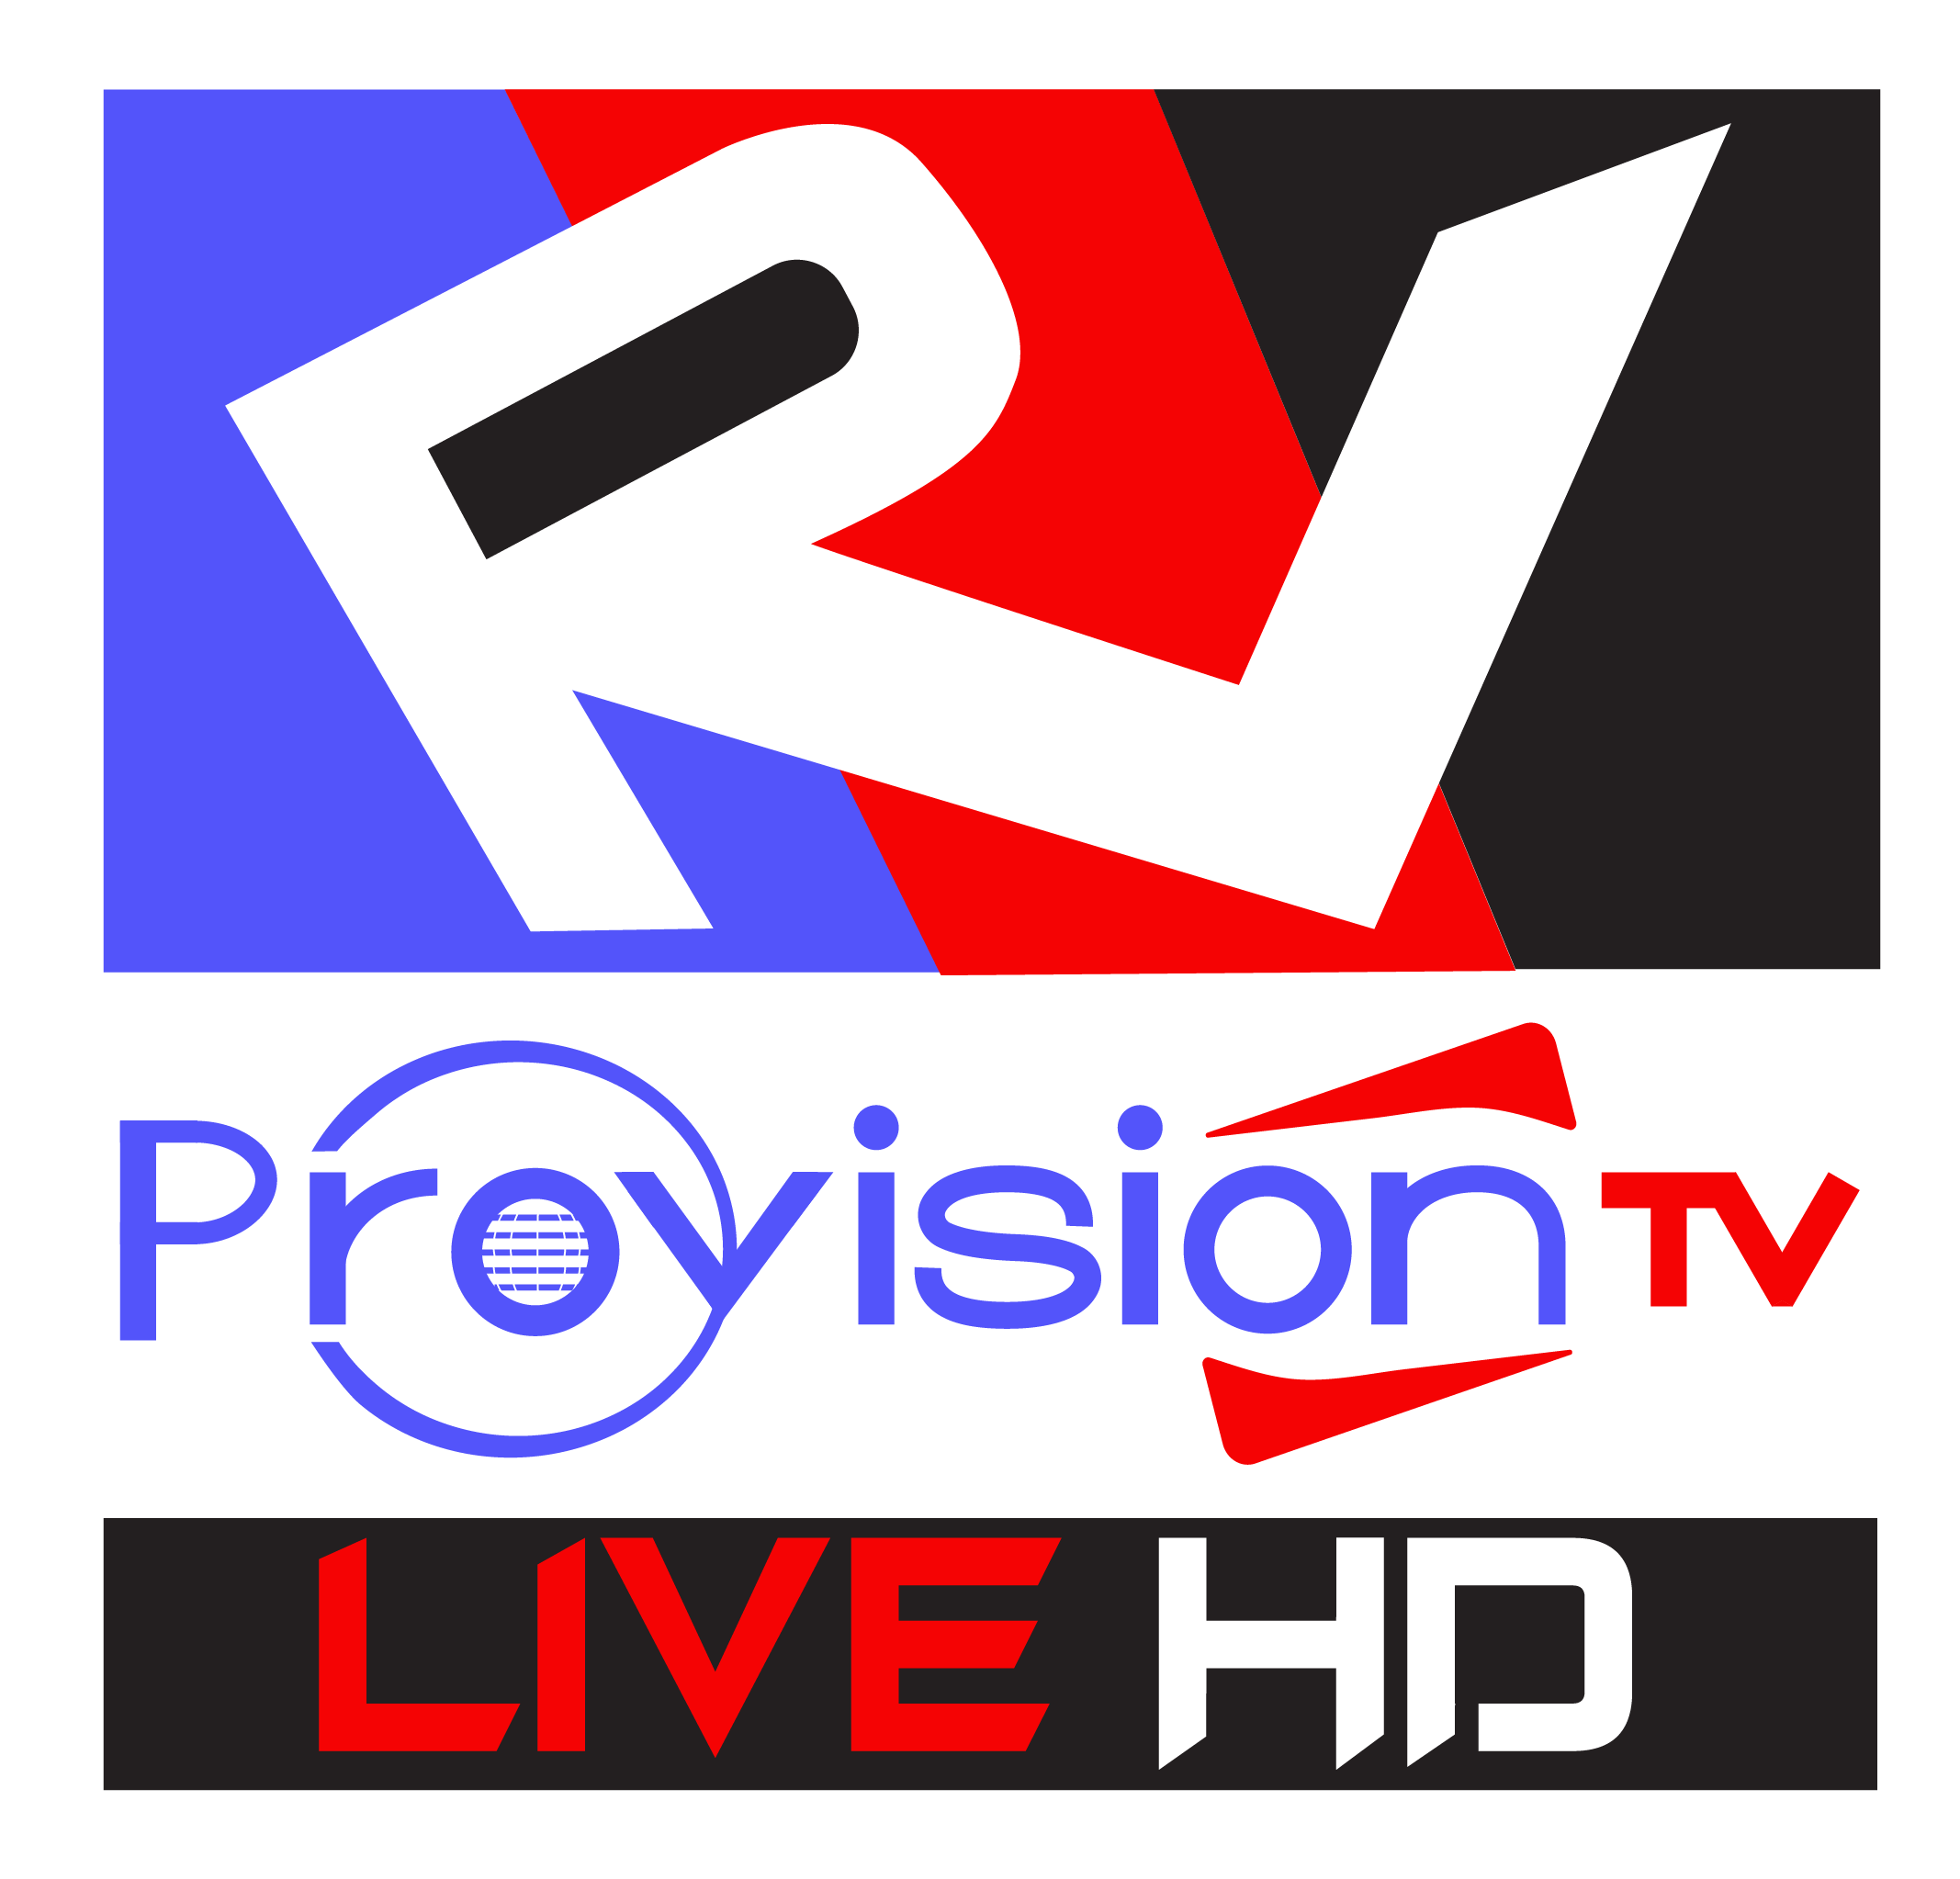 Provision-LiveHD_v1-02.png